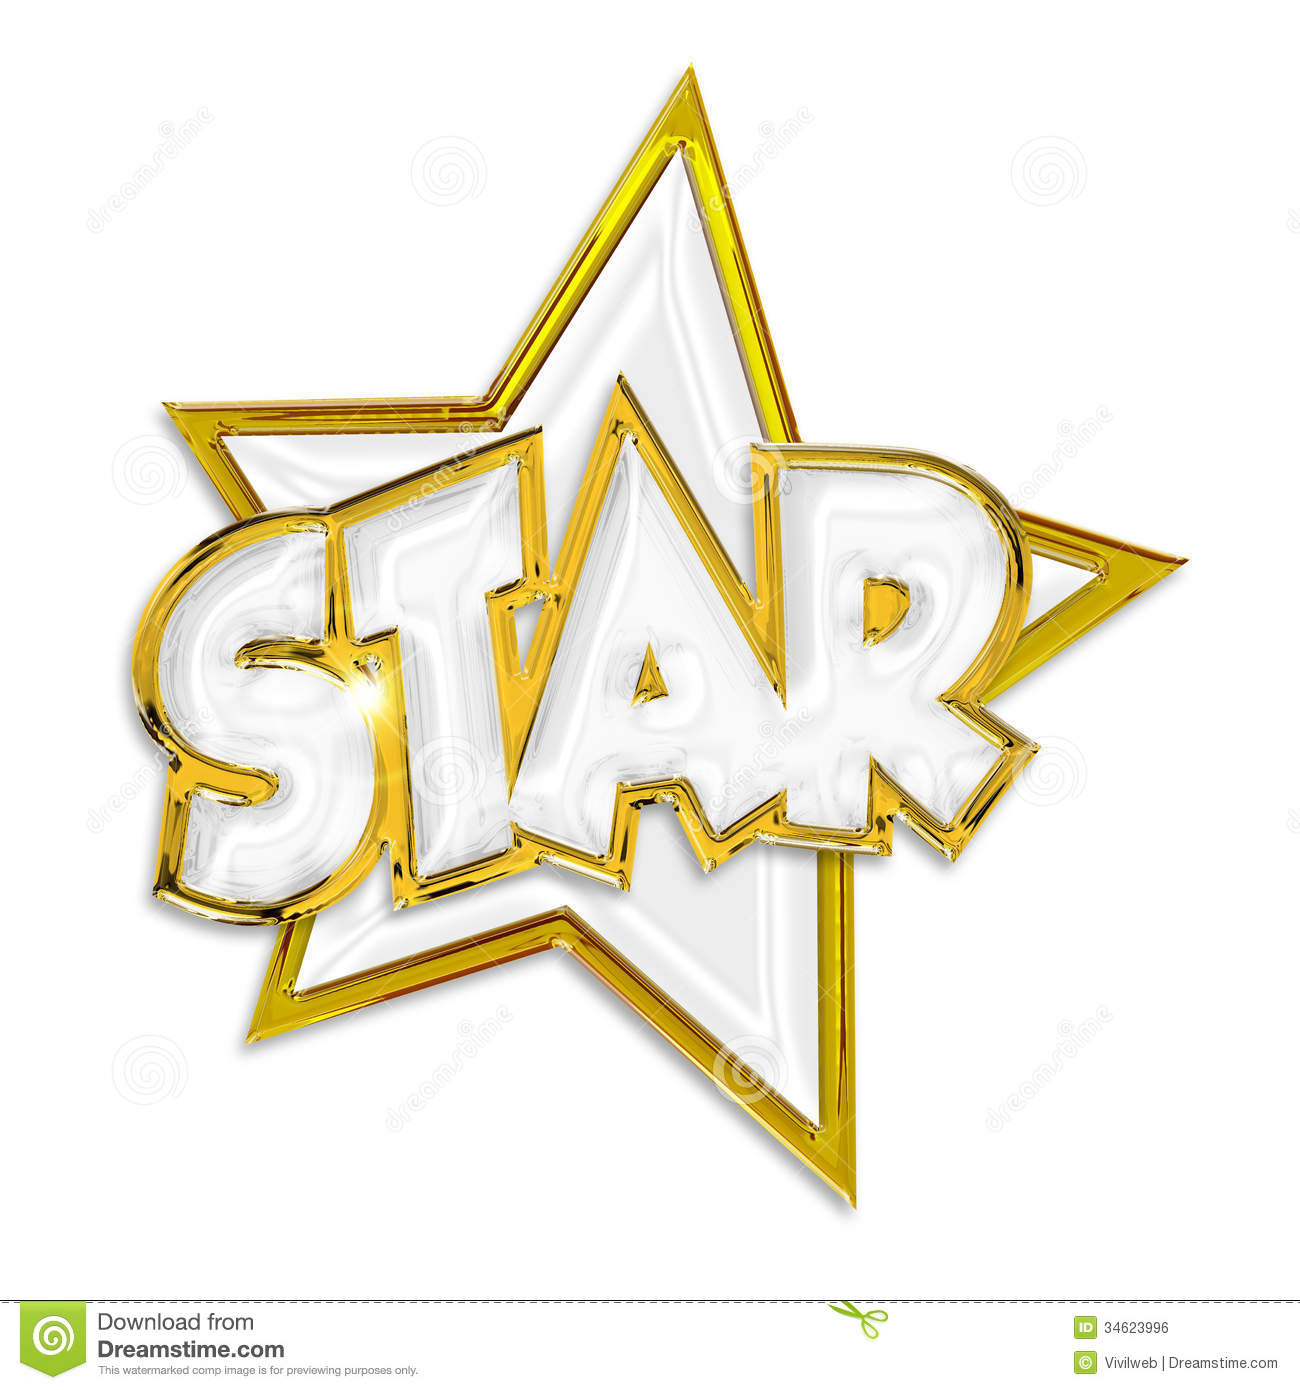 Shining Star Royalty Free Stock Image - Image: 34623996